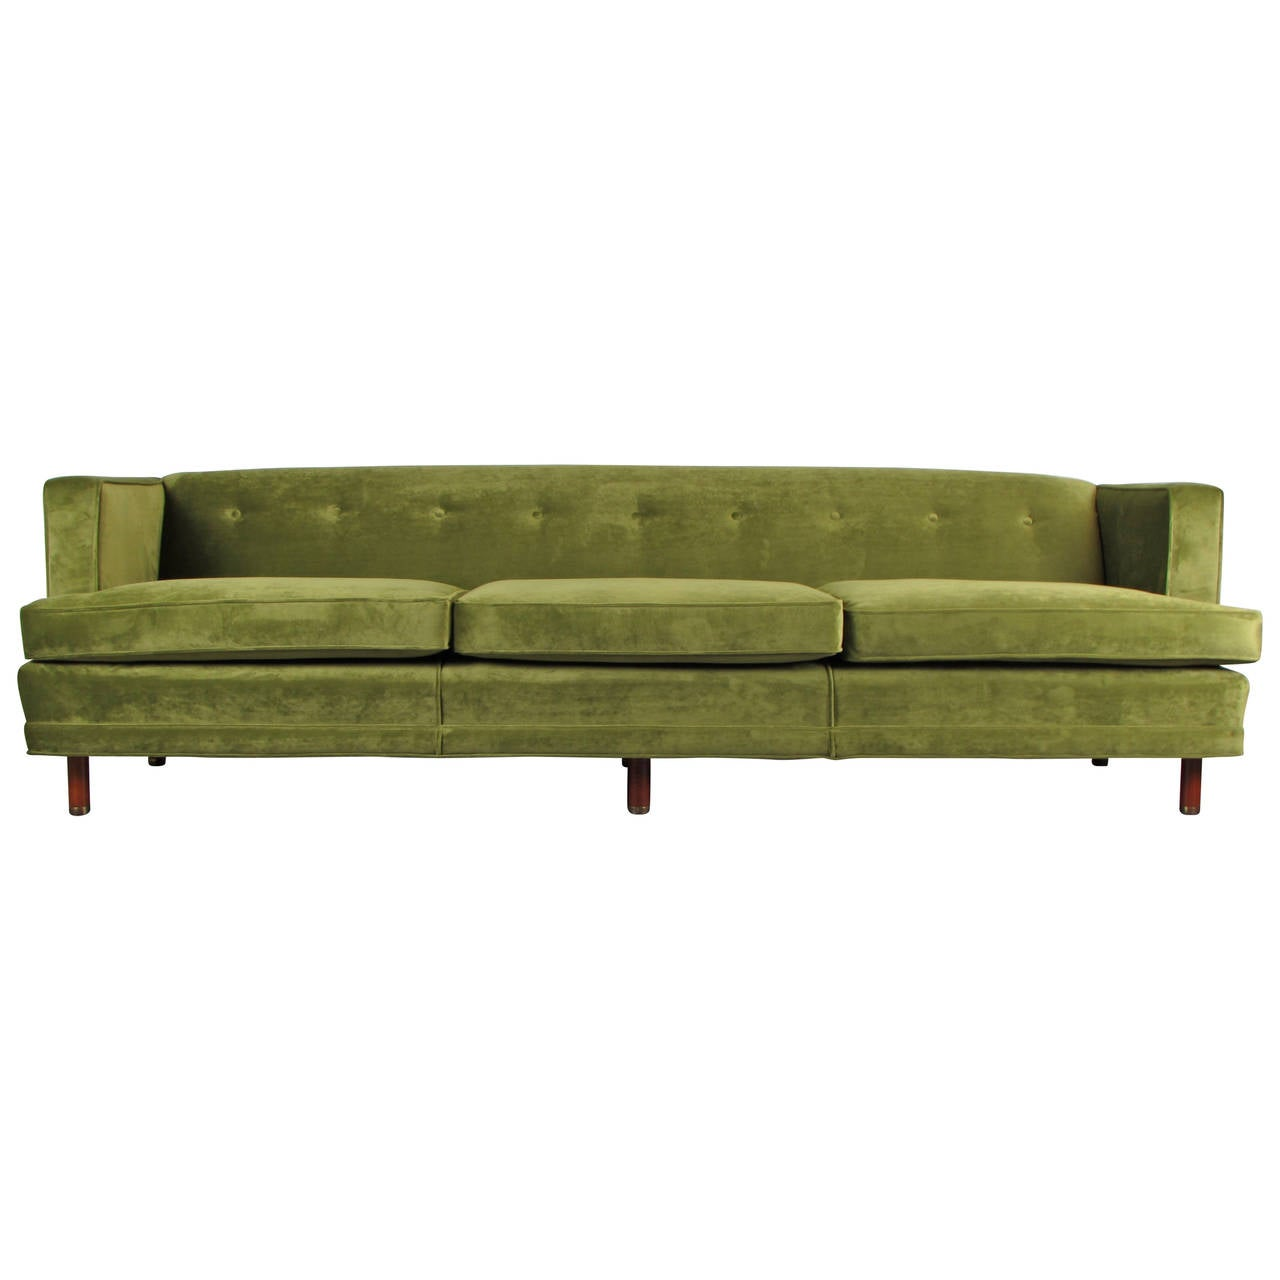 Striking Velvet Tuxedo Sofa in the Style of Edward Wormley, 1960s 1